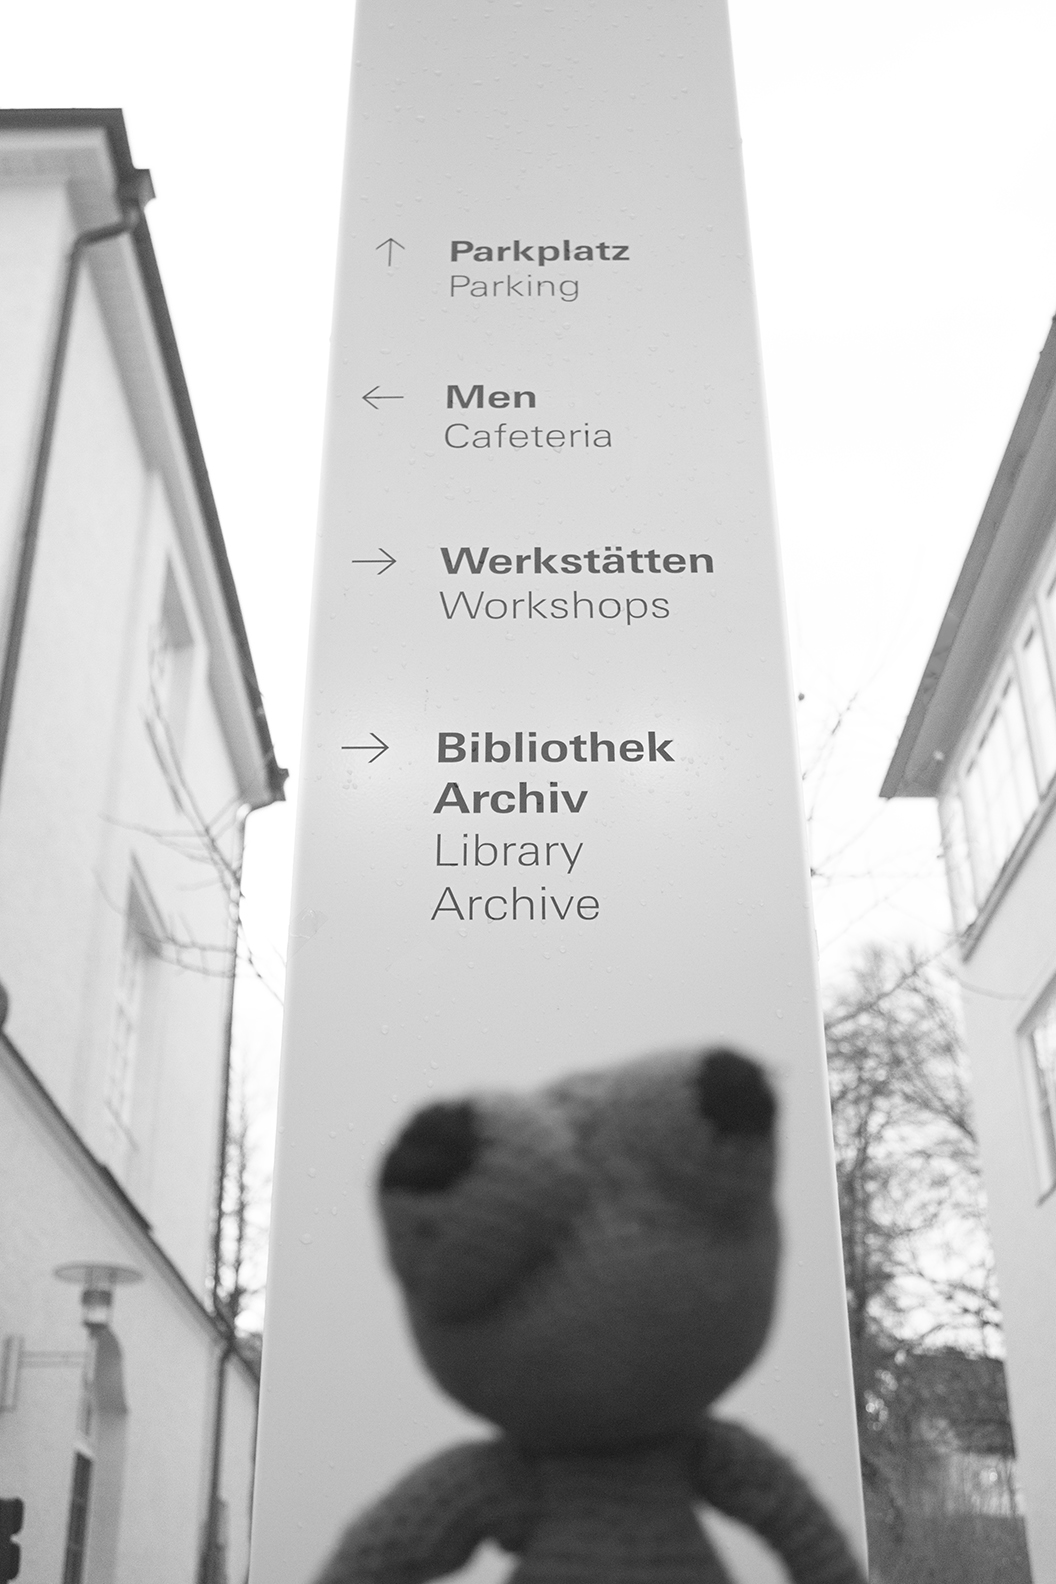 teddy bear looking at sign with directions to different rooms in the inner yard of the university of design in Schwäbisch Gmünd